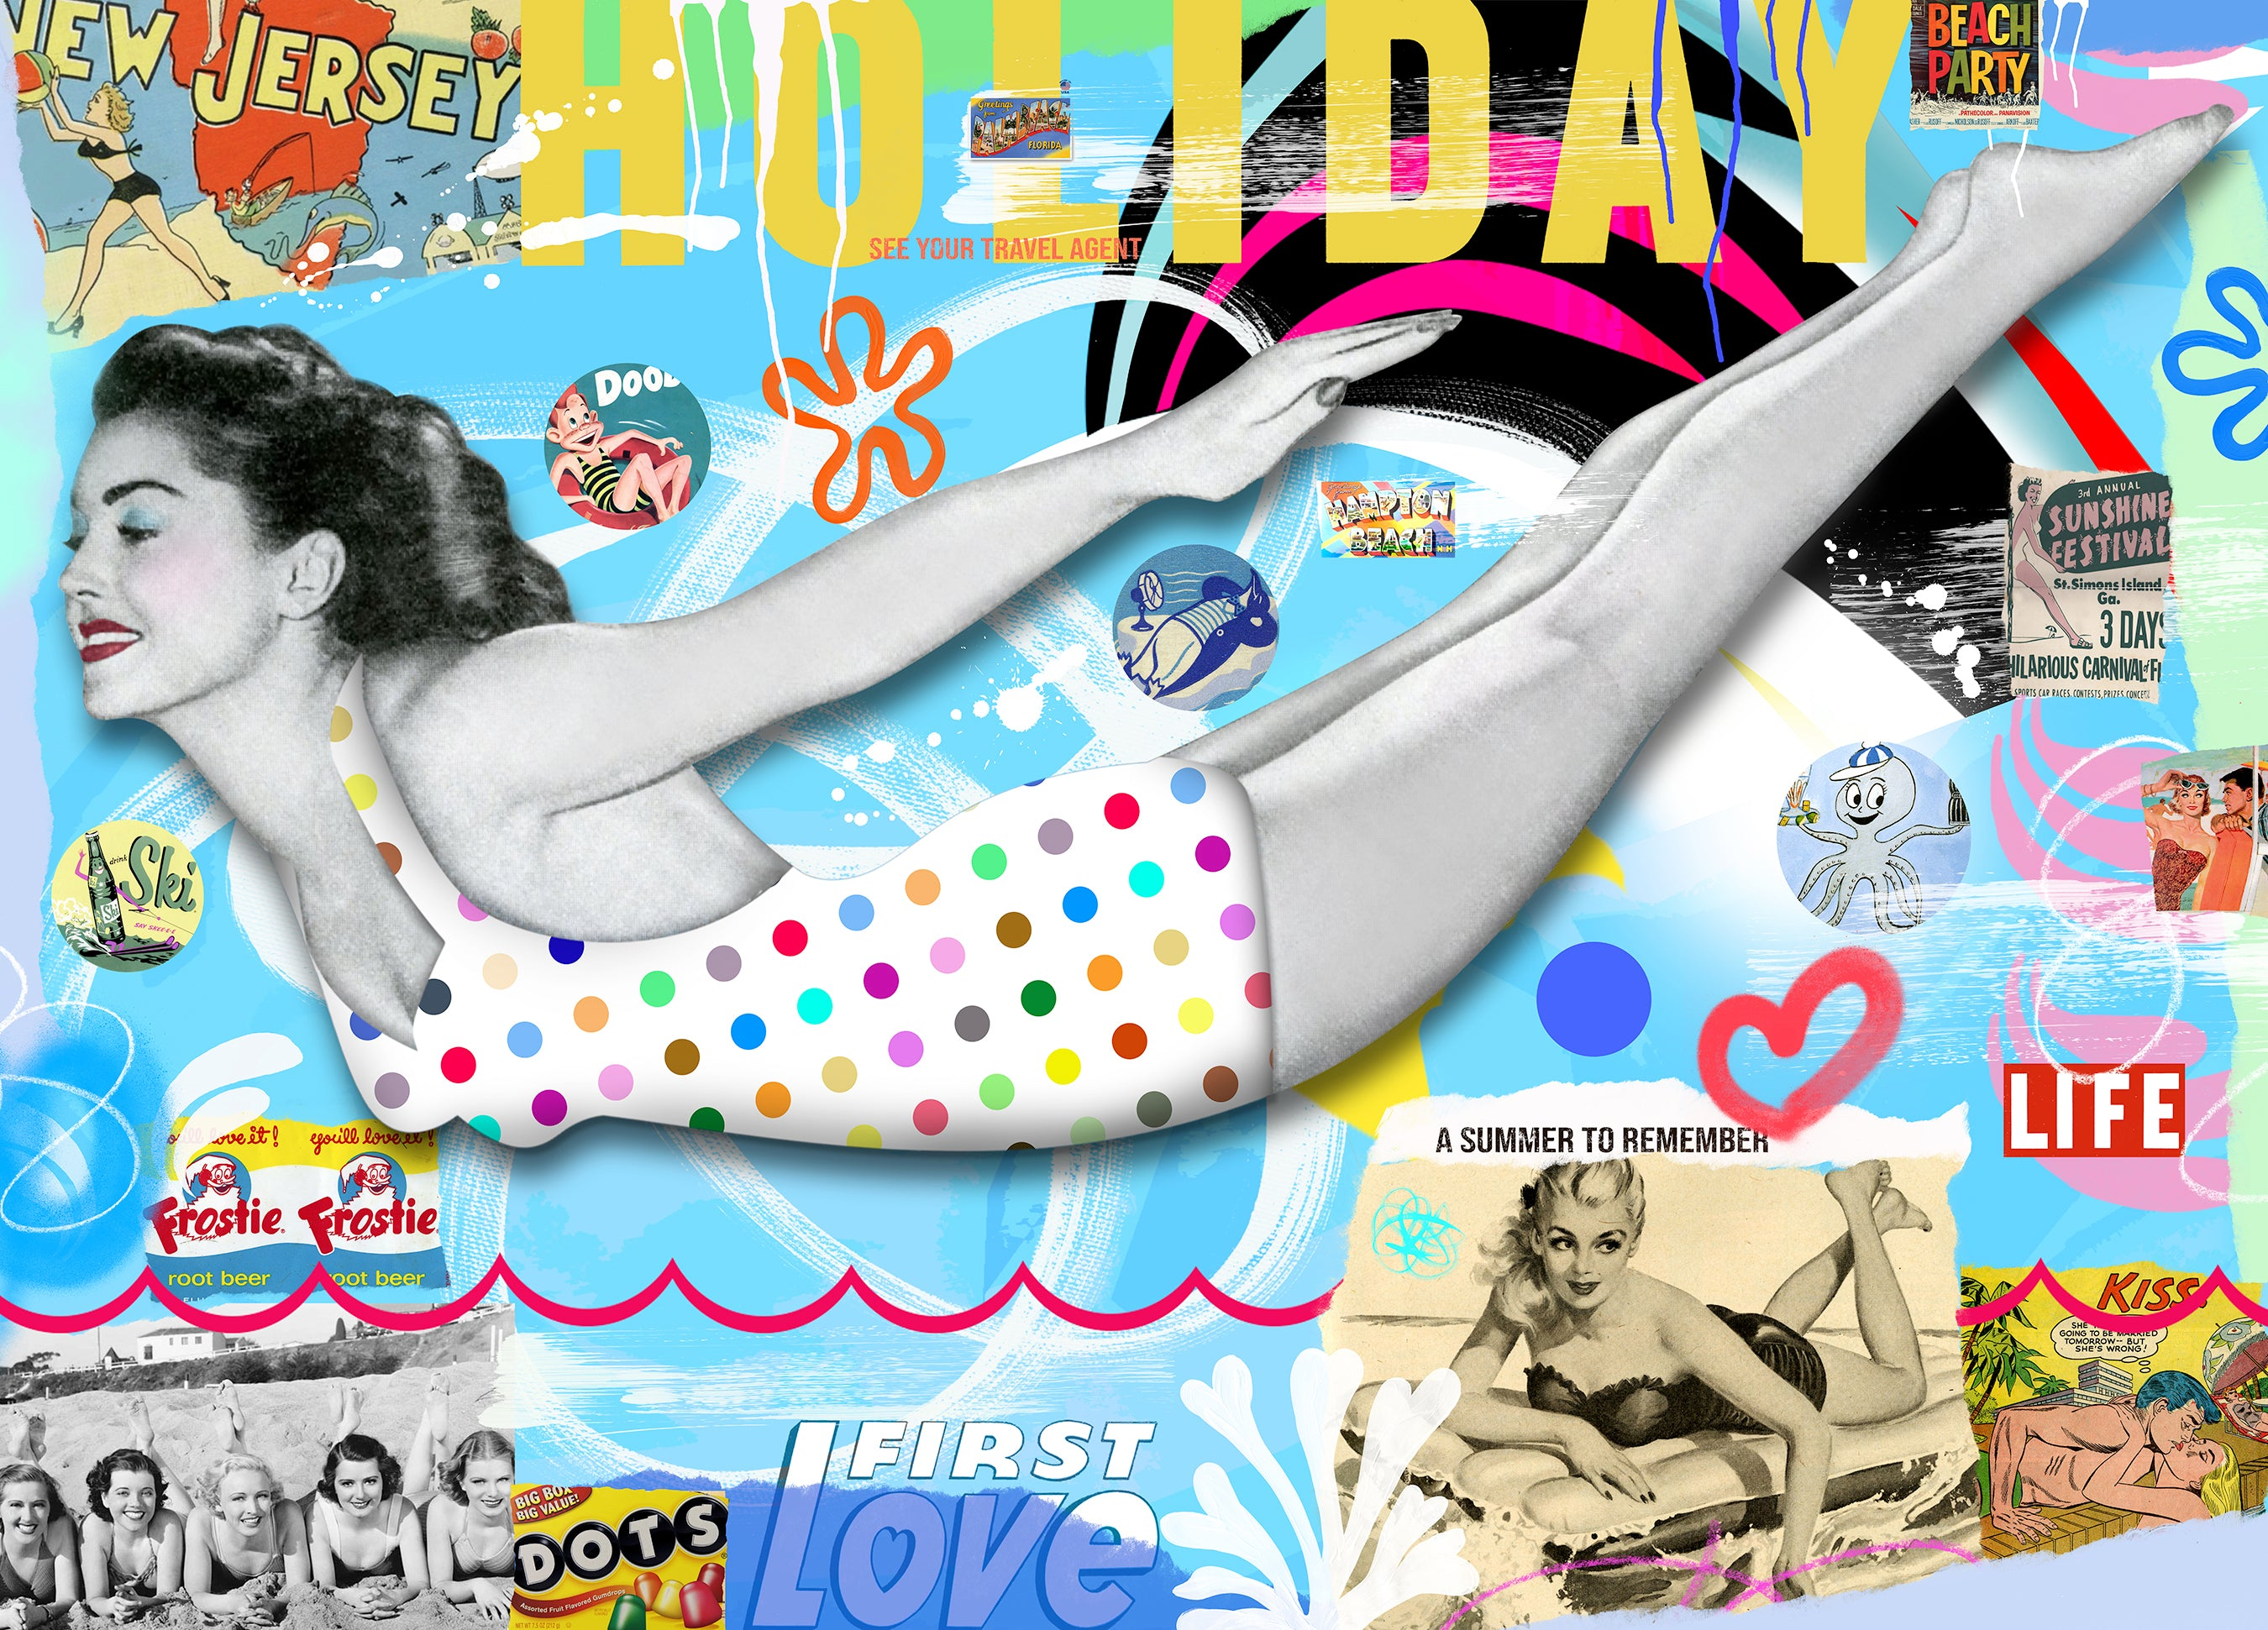 king of pop art nelson de la nuez summer to remember beach party polka dot swimming pool